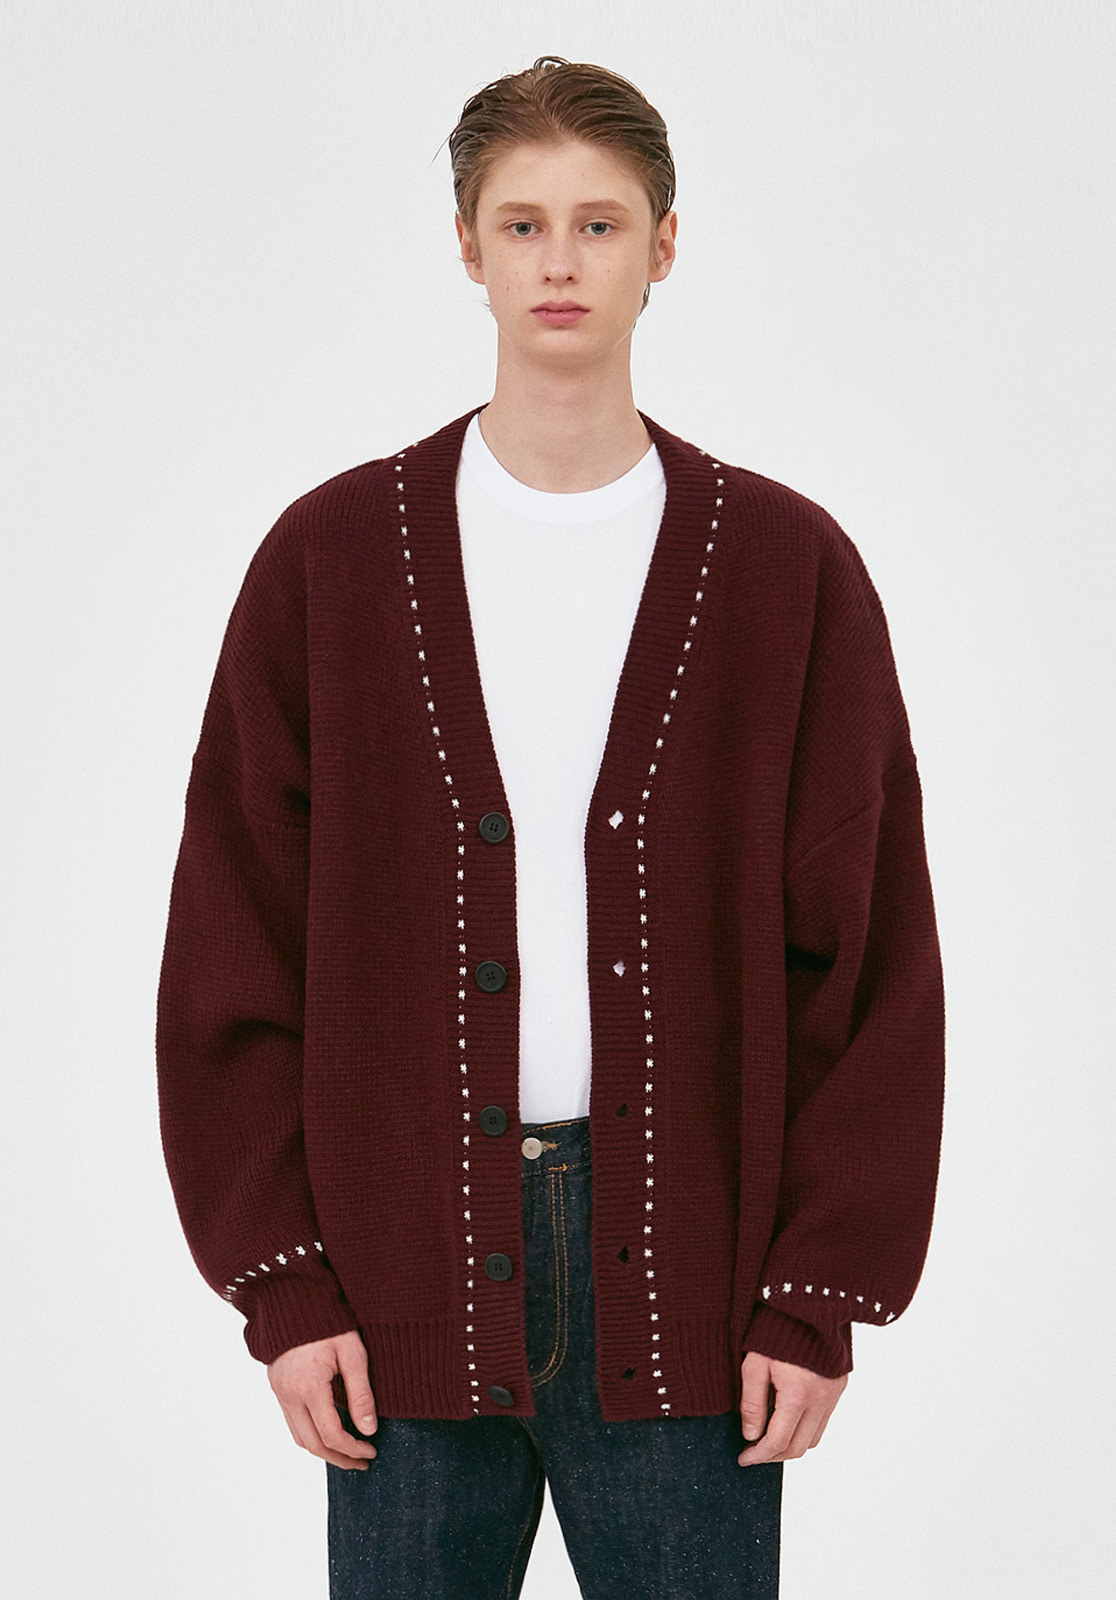 V546 STITCHES OVERSIZE KNIT CARDIGAN  BURGUNDY